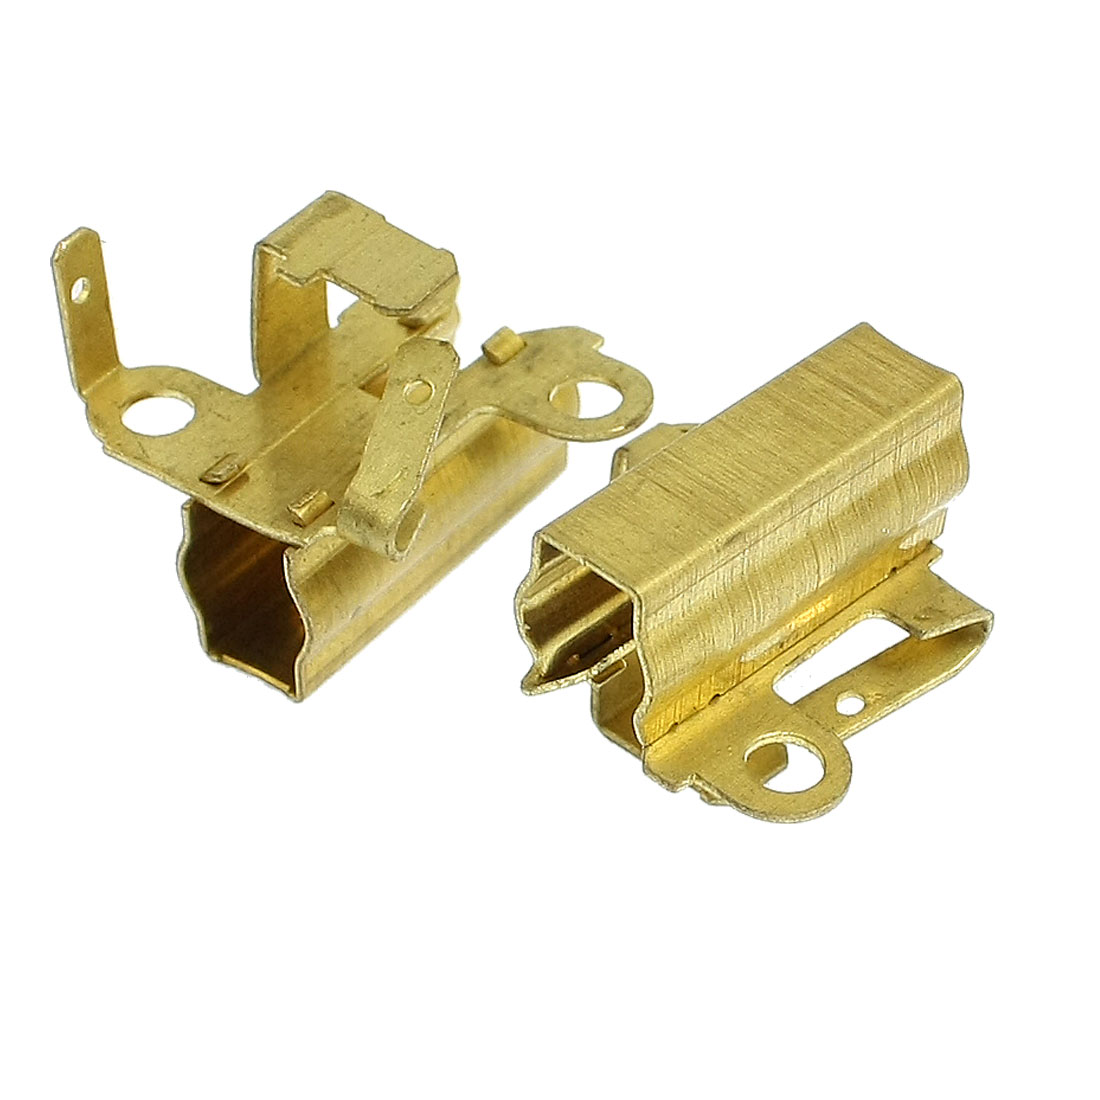 2 Pcs Brass Carbon Brush Holders for Bosch GBH2-24 Rotary Hammer